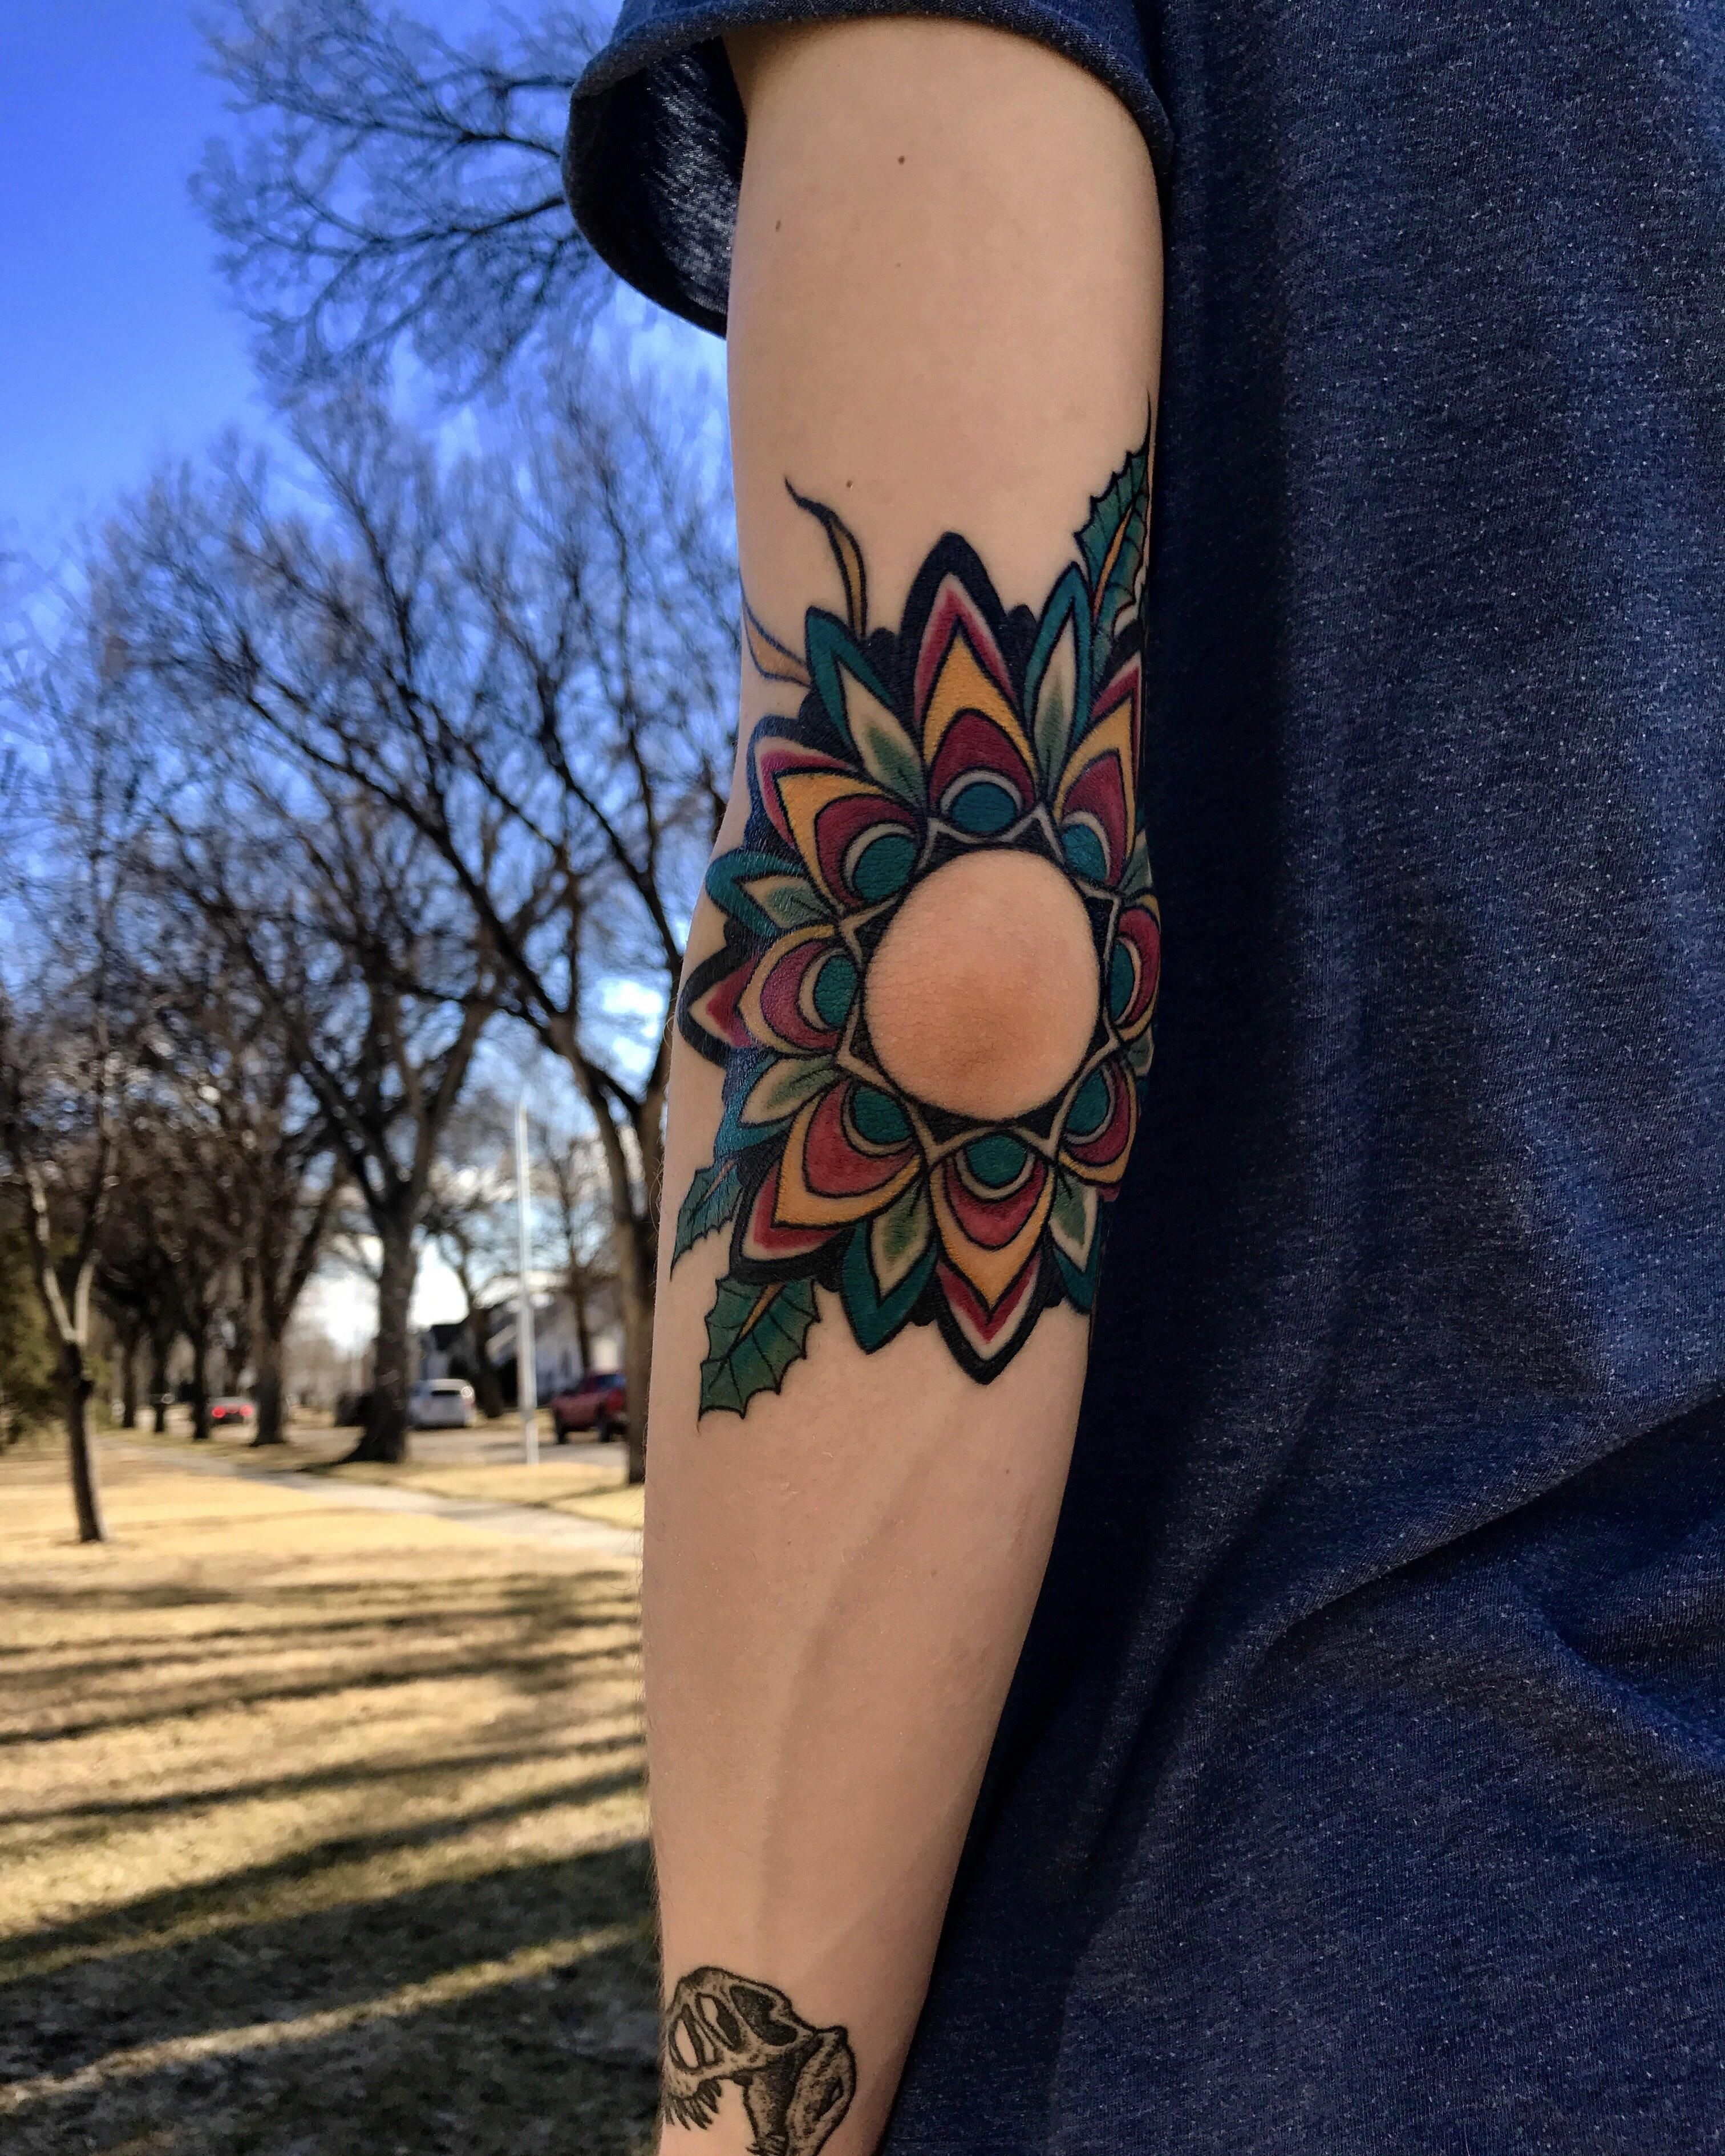 40 Inspirational Creative Tattoo Ideas For Men and